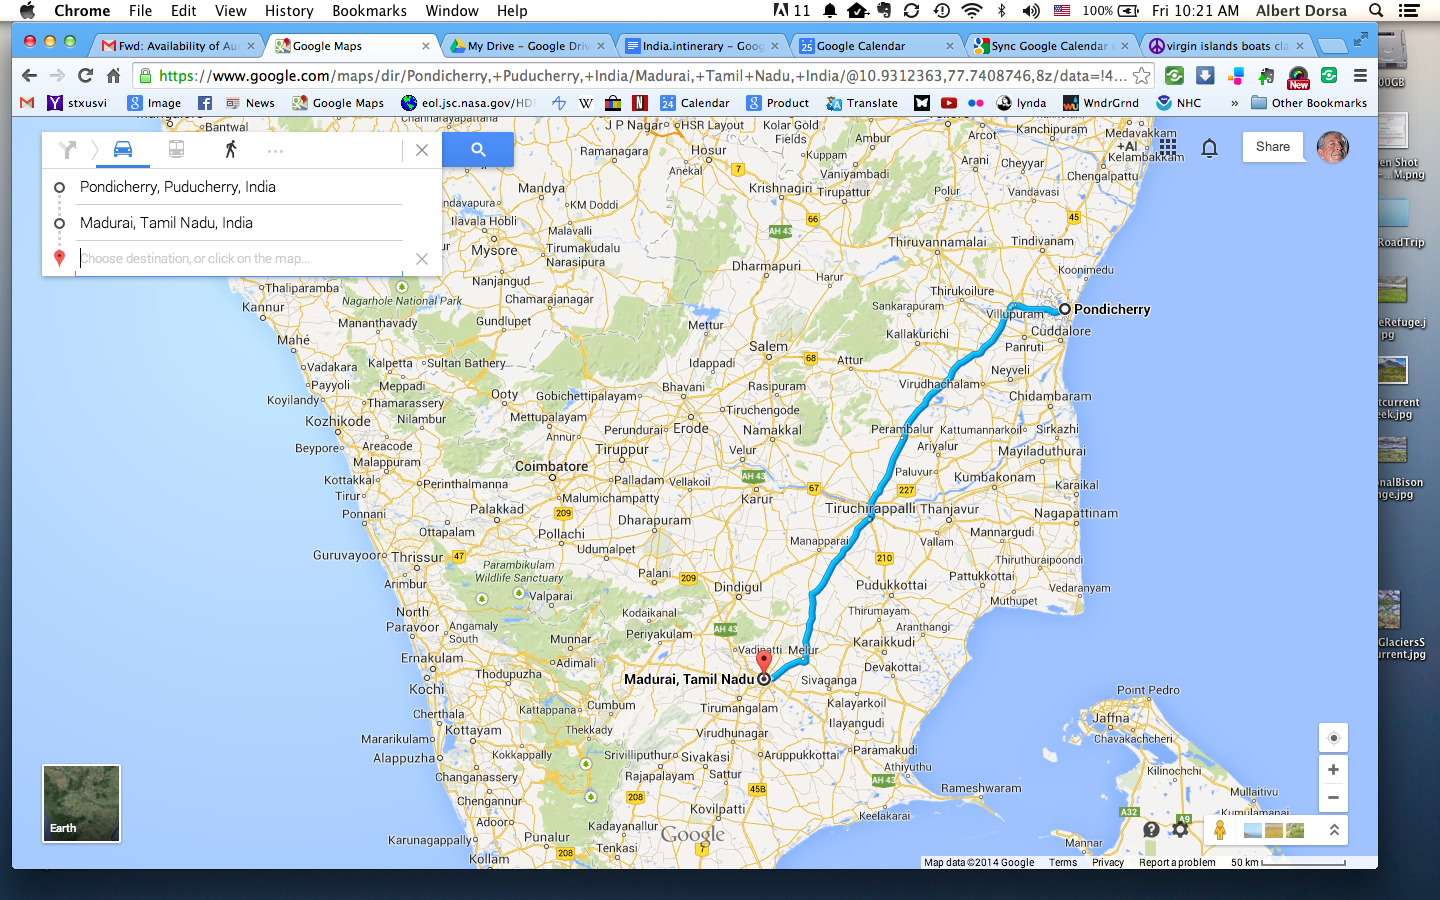 Screenshot of Google maps showing the route from Puducherry to Madurai. About 4:45 hrs driving time.